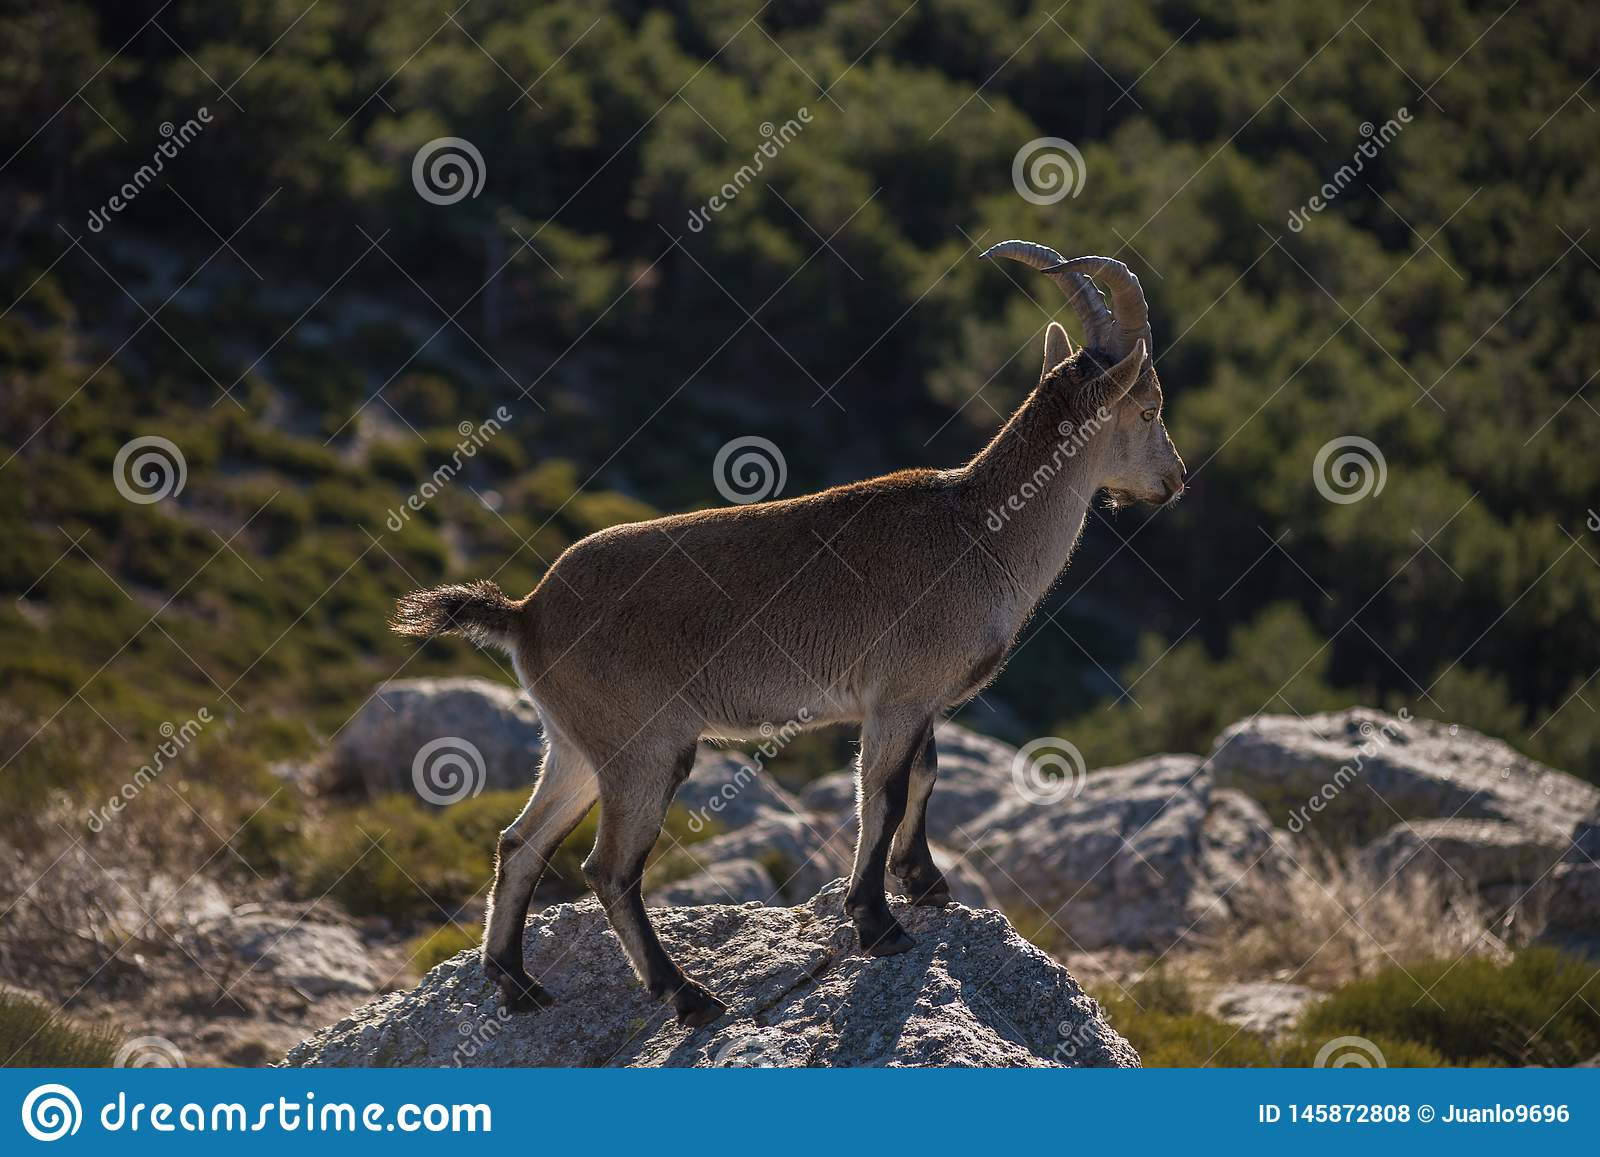 The goat. Wild mountain goats at dawn on the National Park of Guadarrama,Spain royalty free stock photos